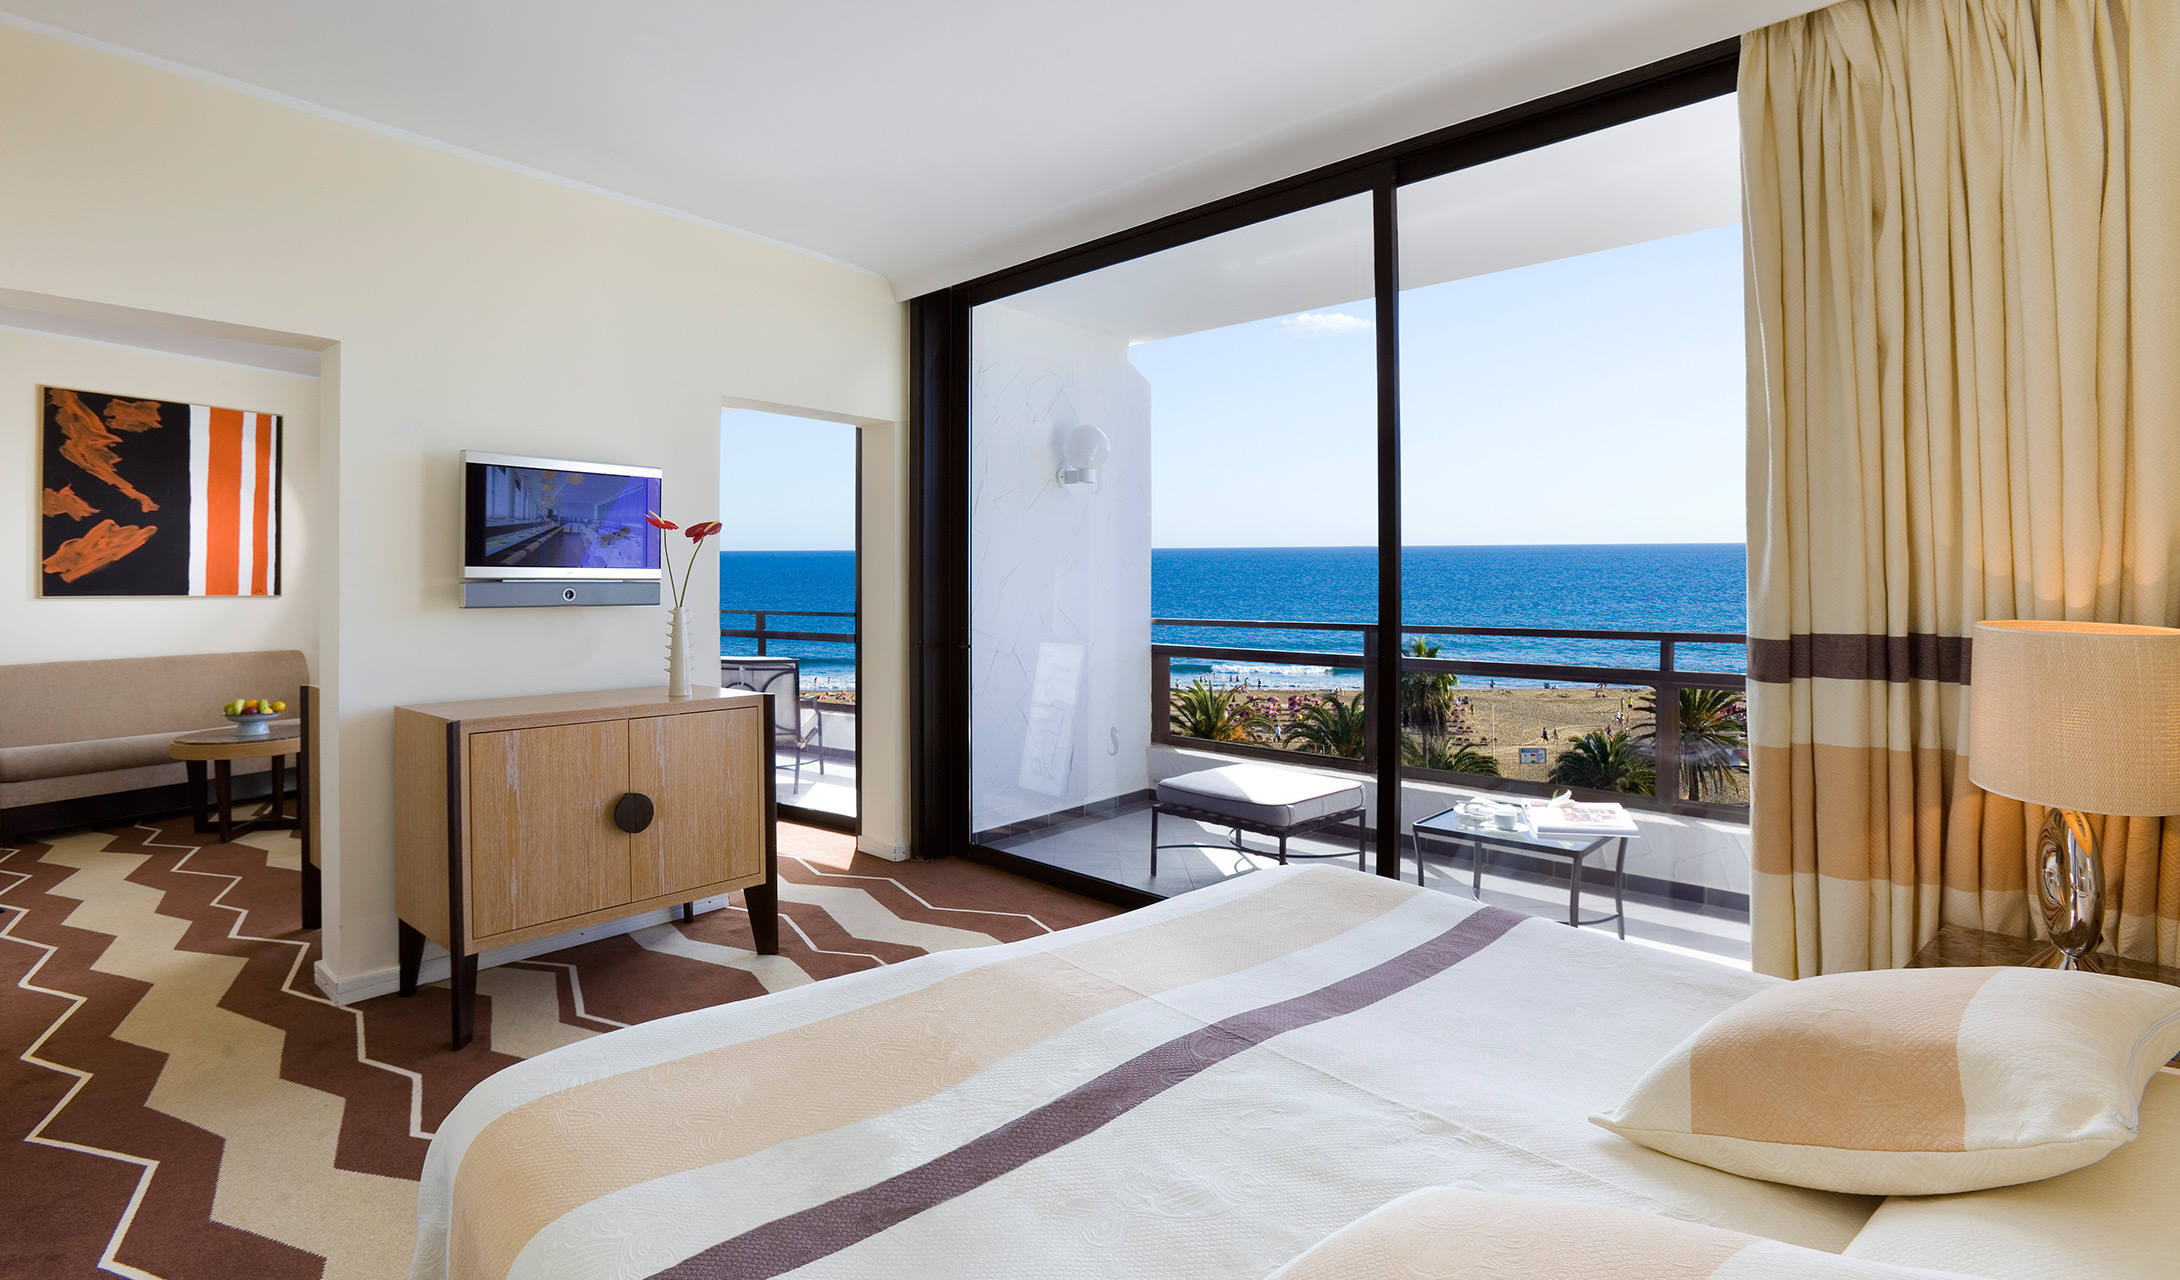 Seaside palm beach maspalomas spain design hotels for Top 10 design hotels europe